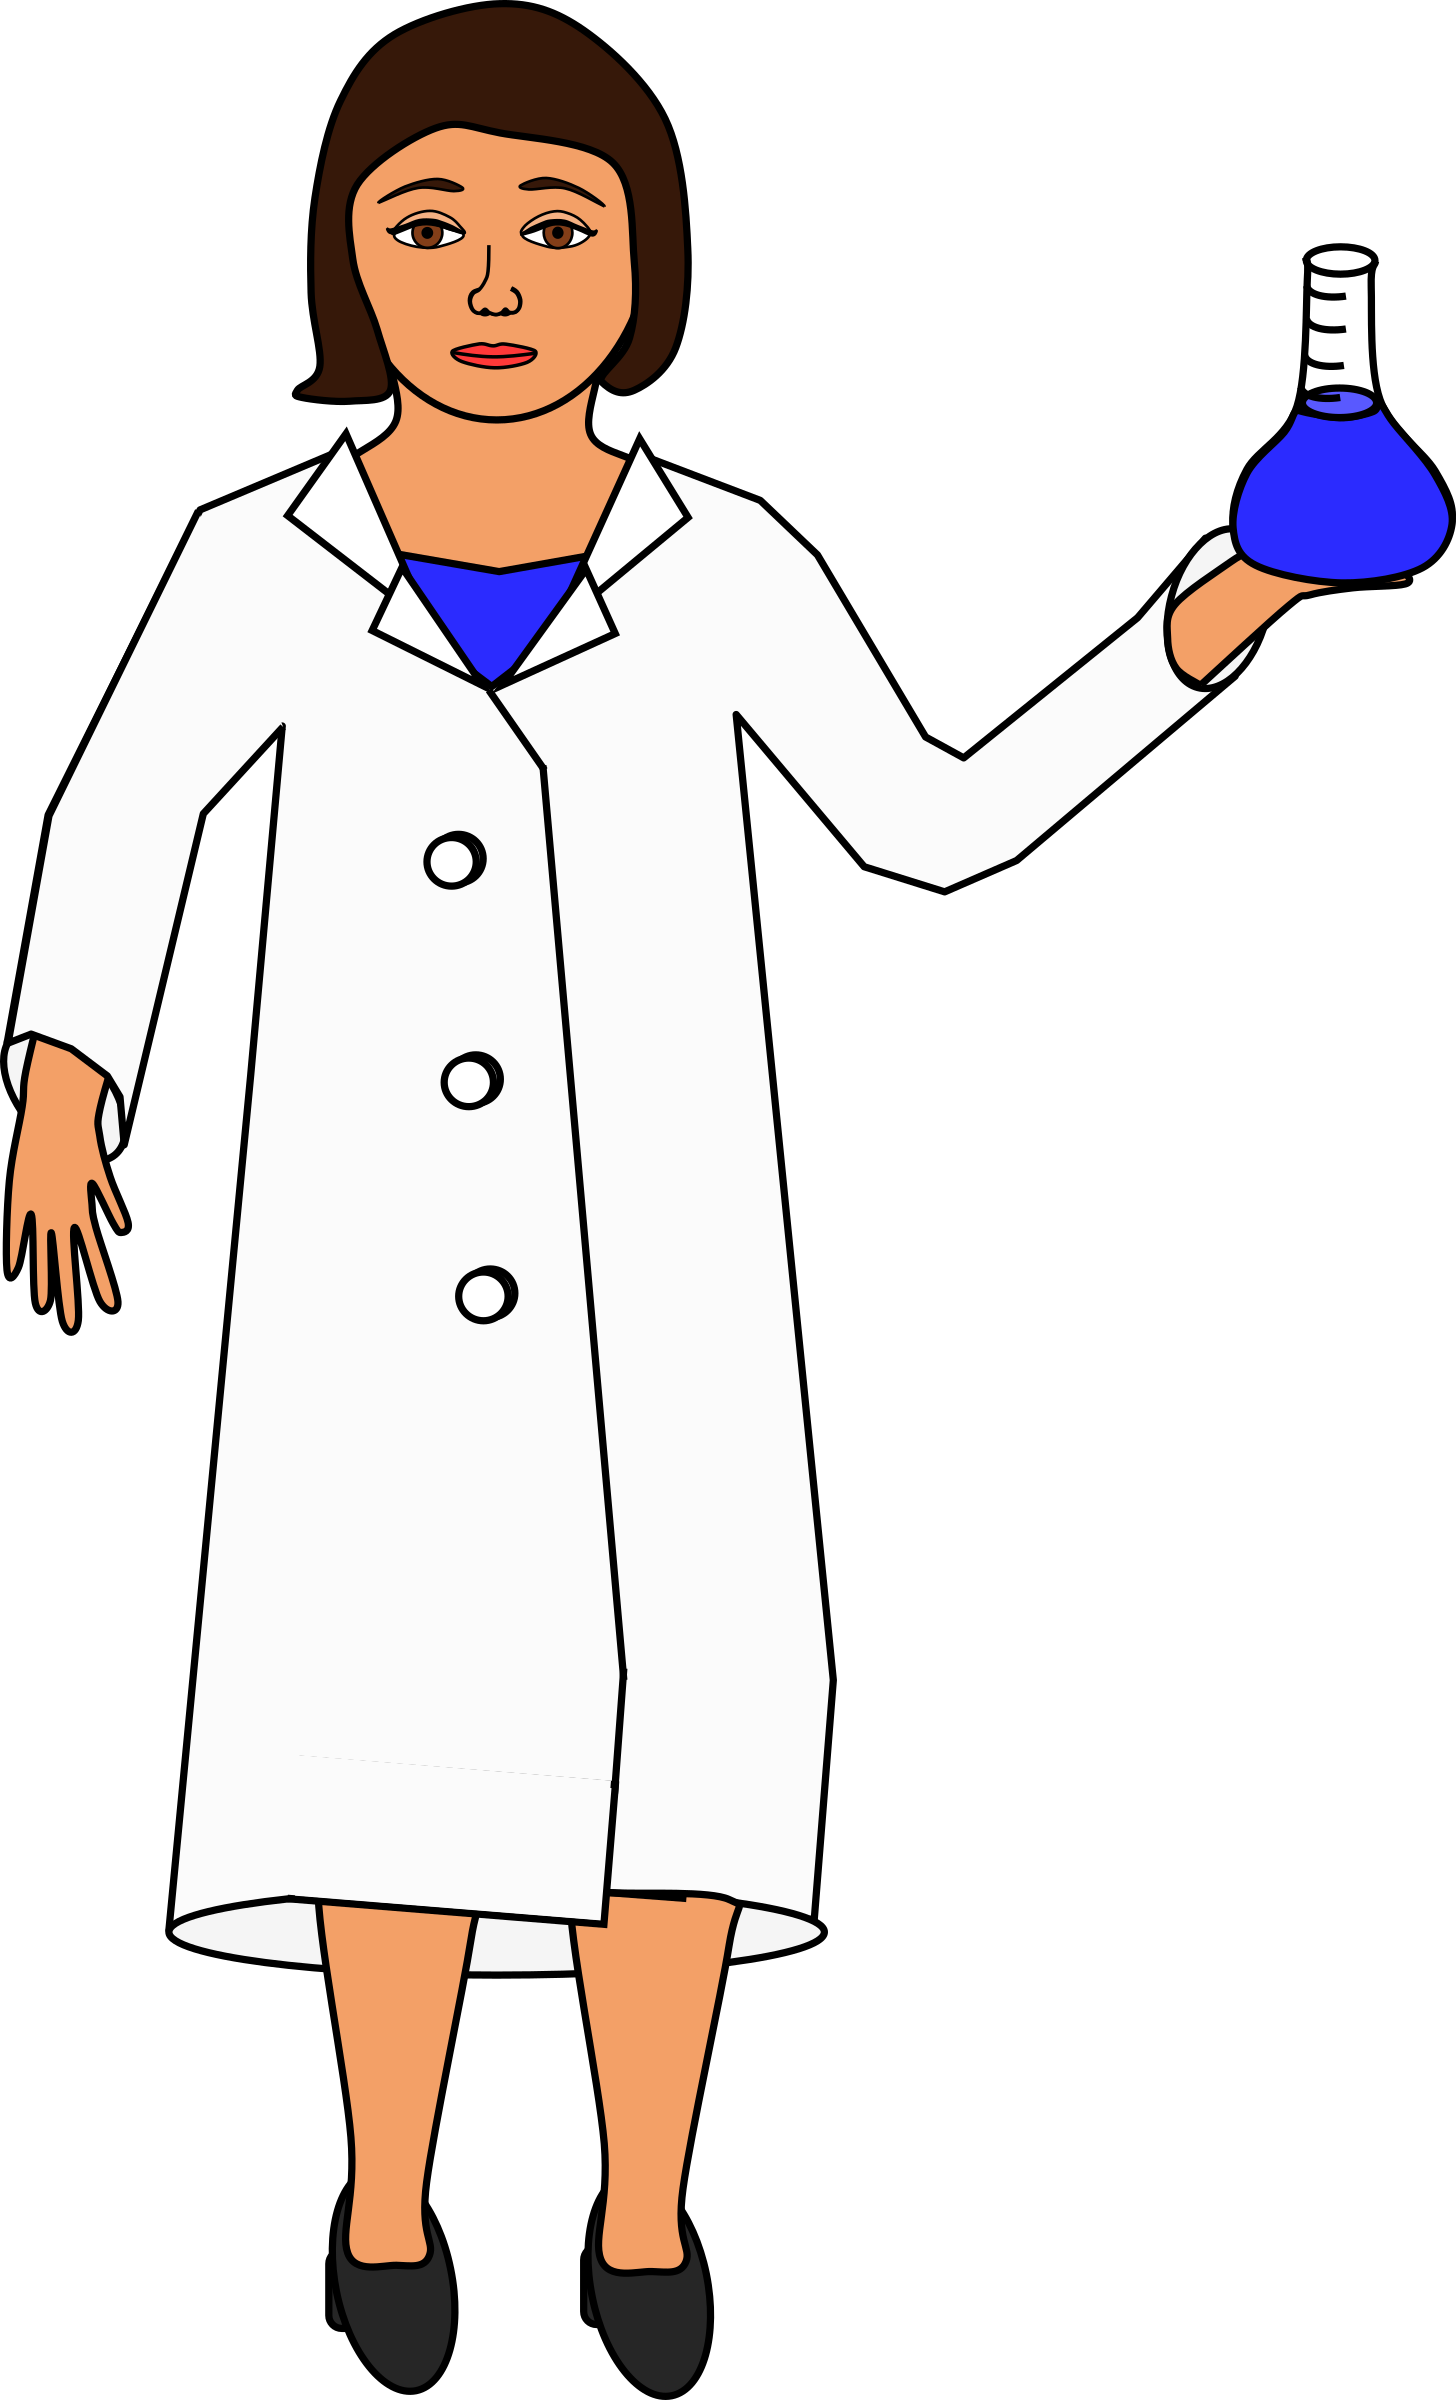 Scientist holding an erlenmeyer flask by barnheartowl